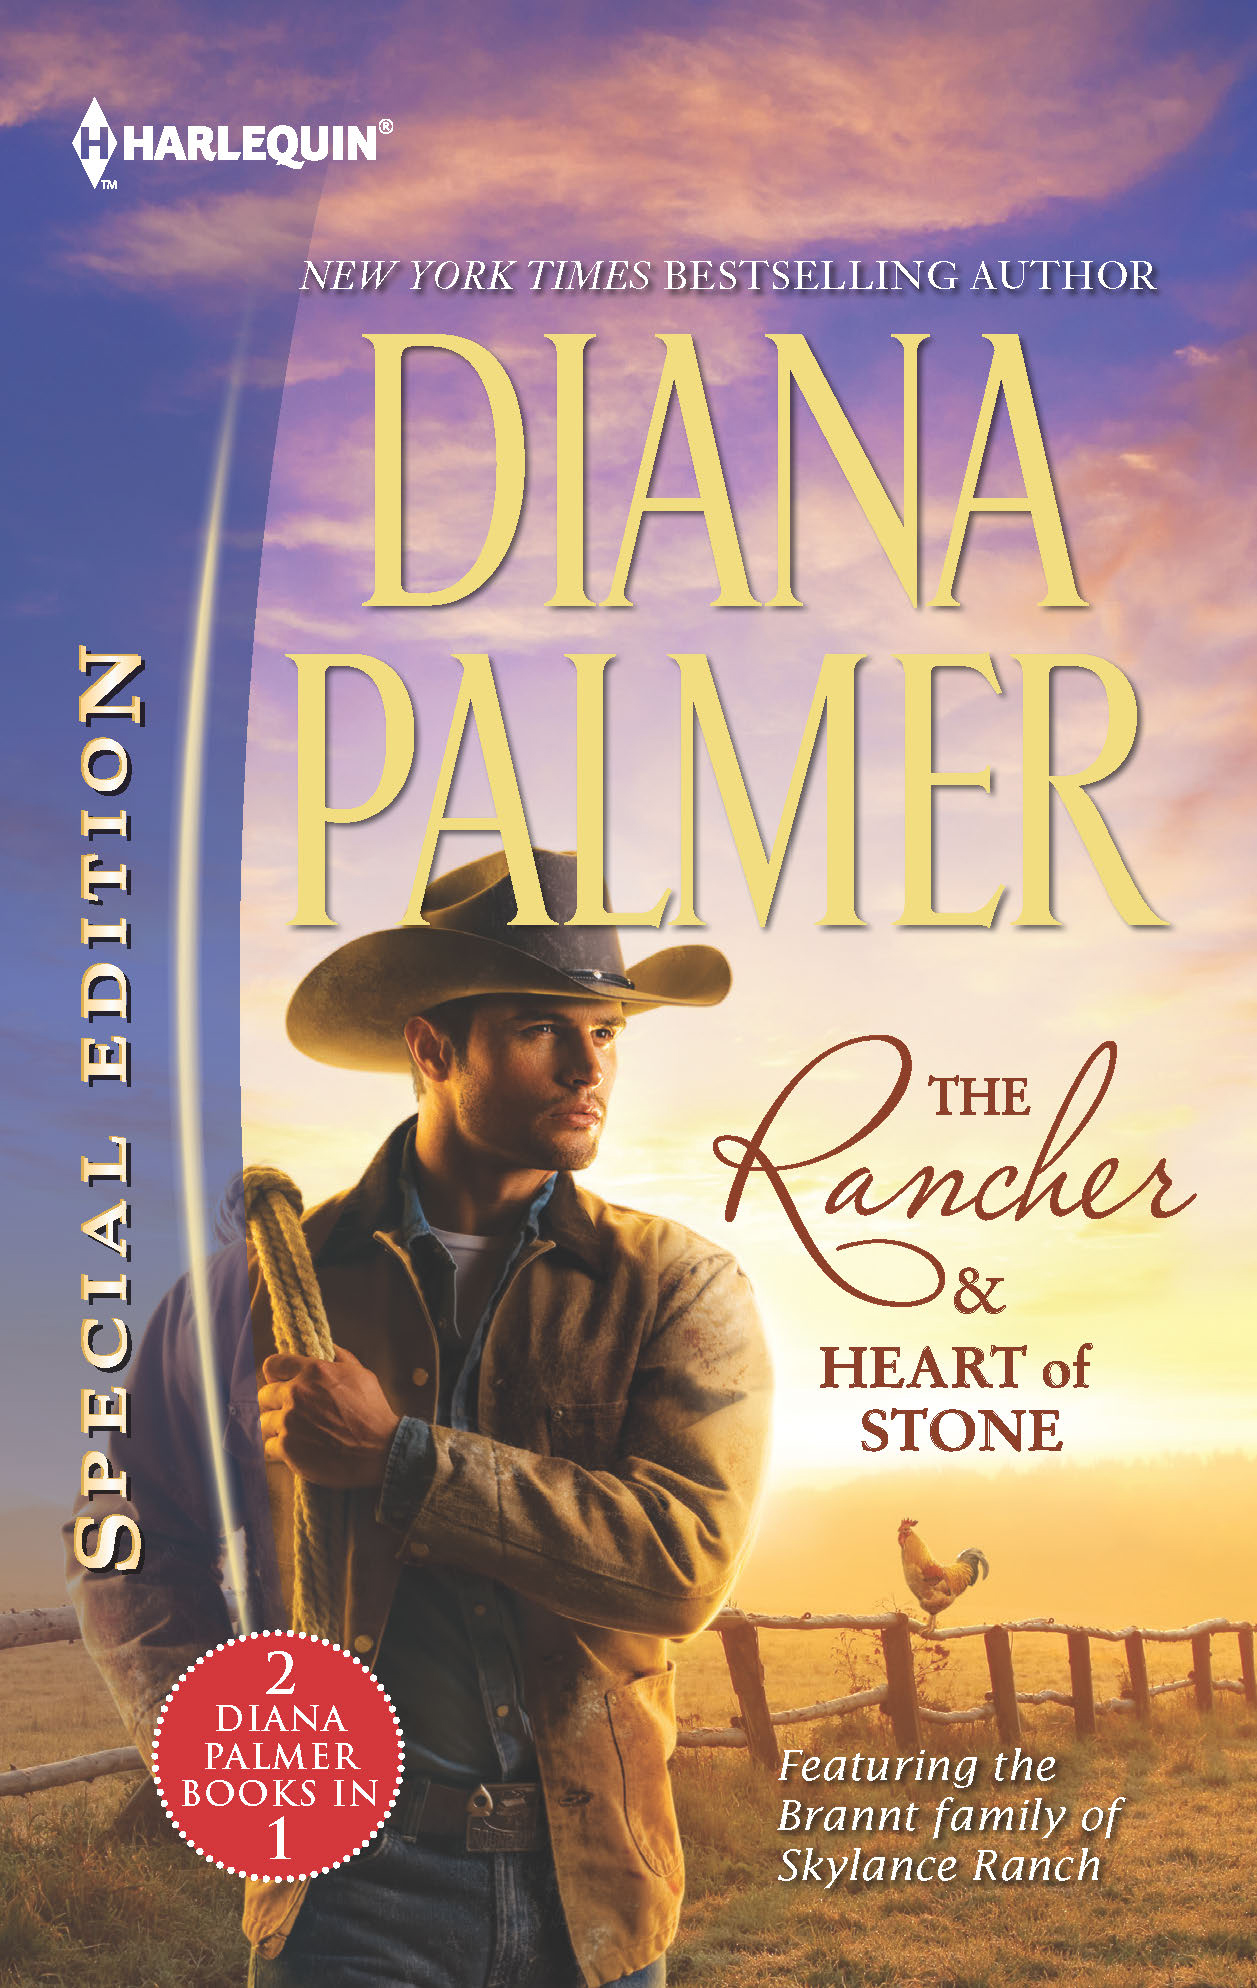 The Rancher & Heart of Stone By: Diana Palmer